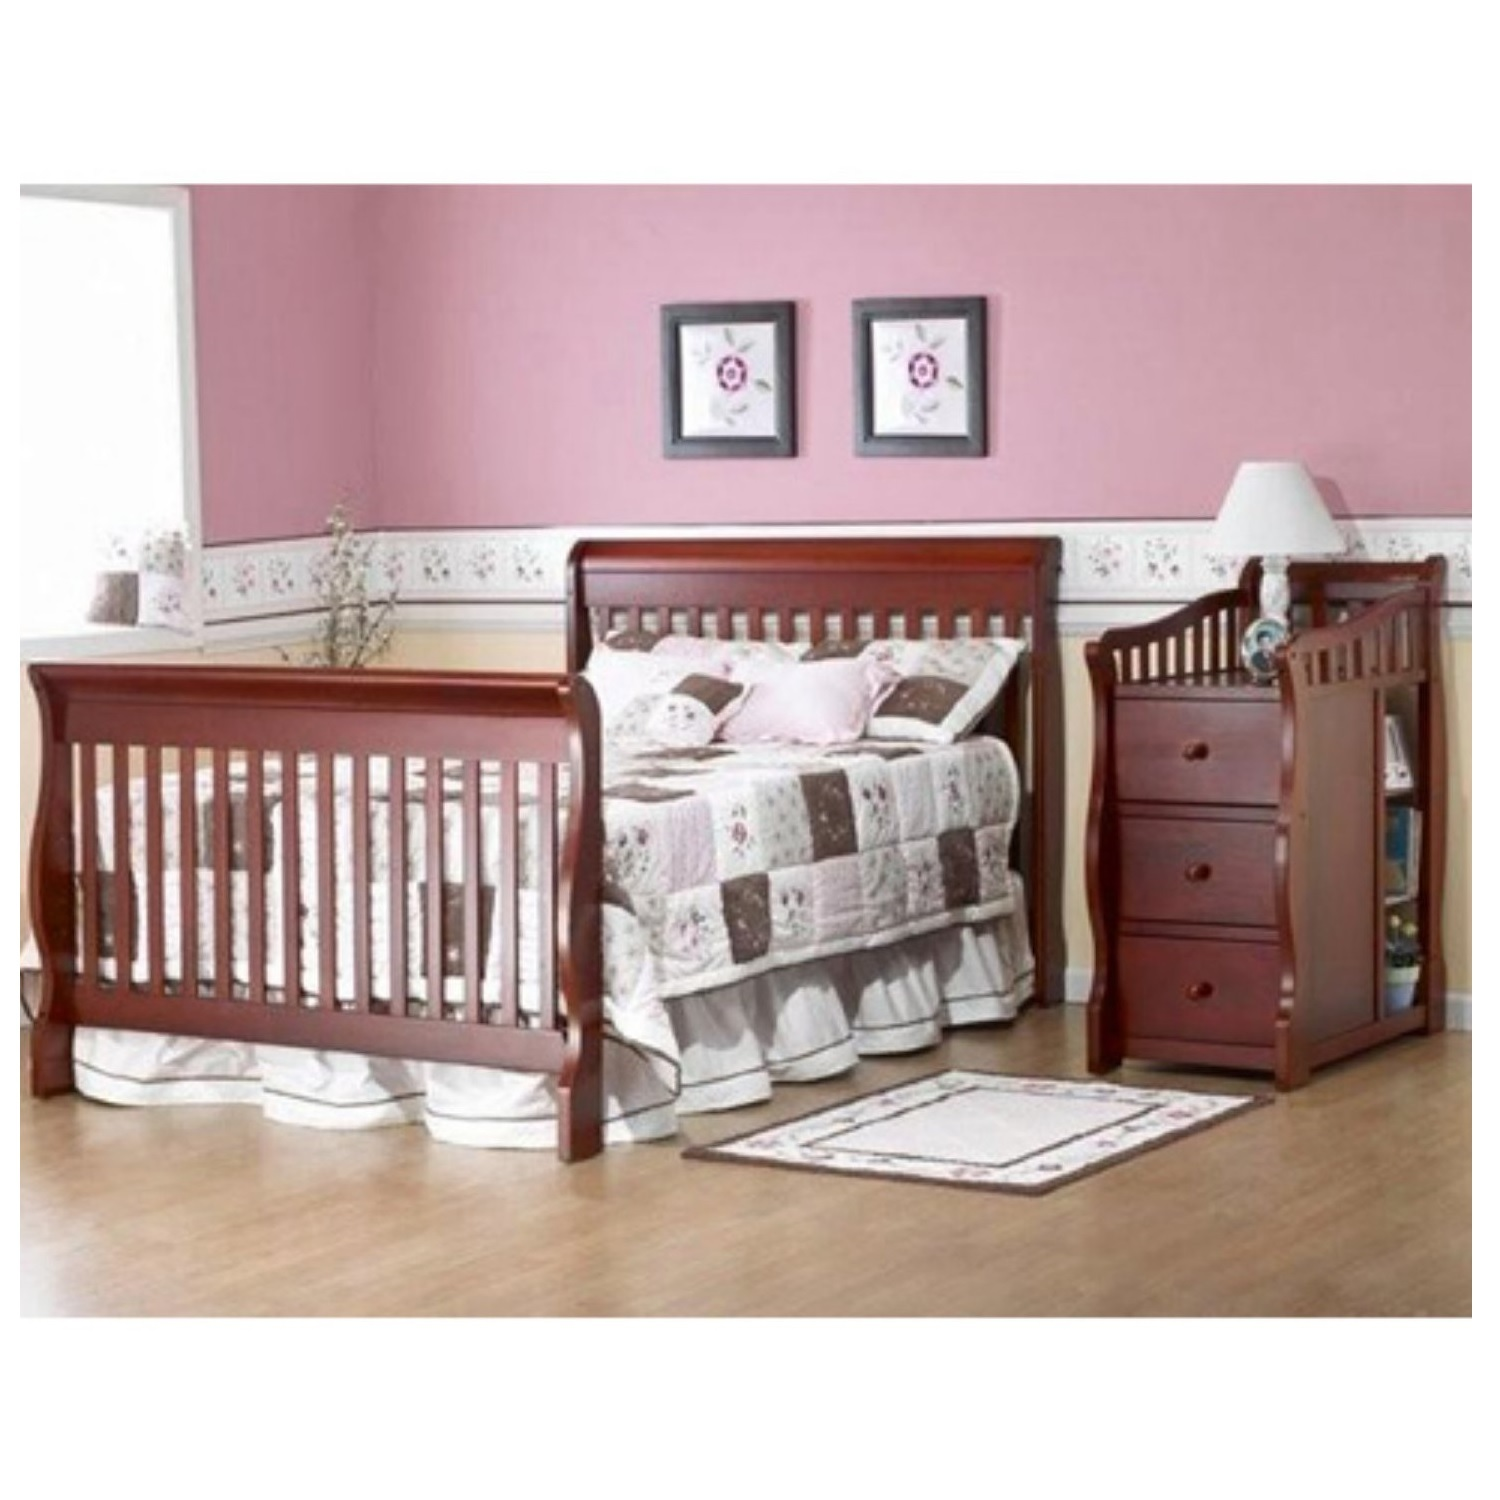 Convertible Baby Crib Changing Table Combo Nursery